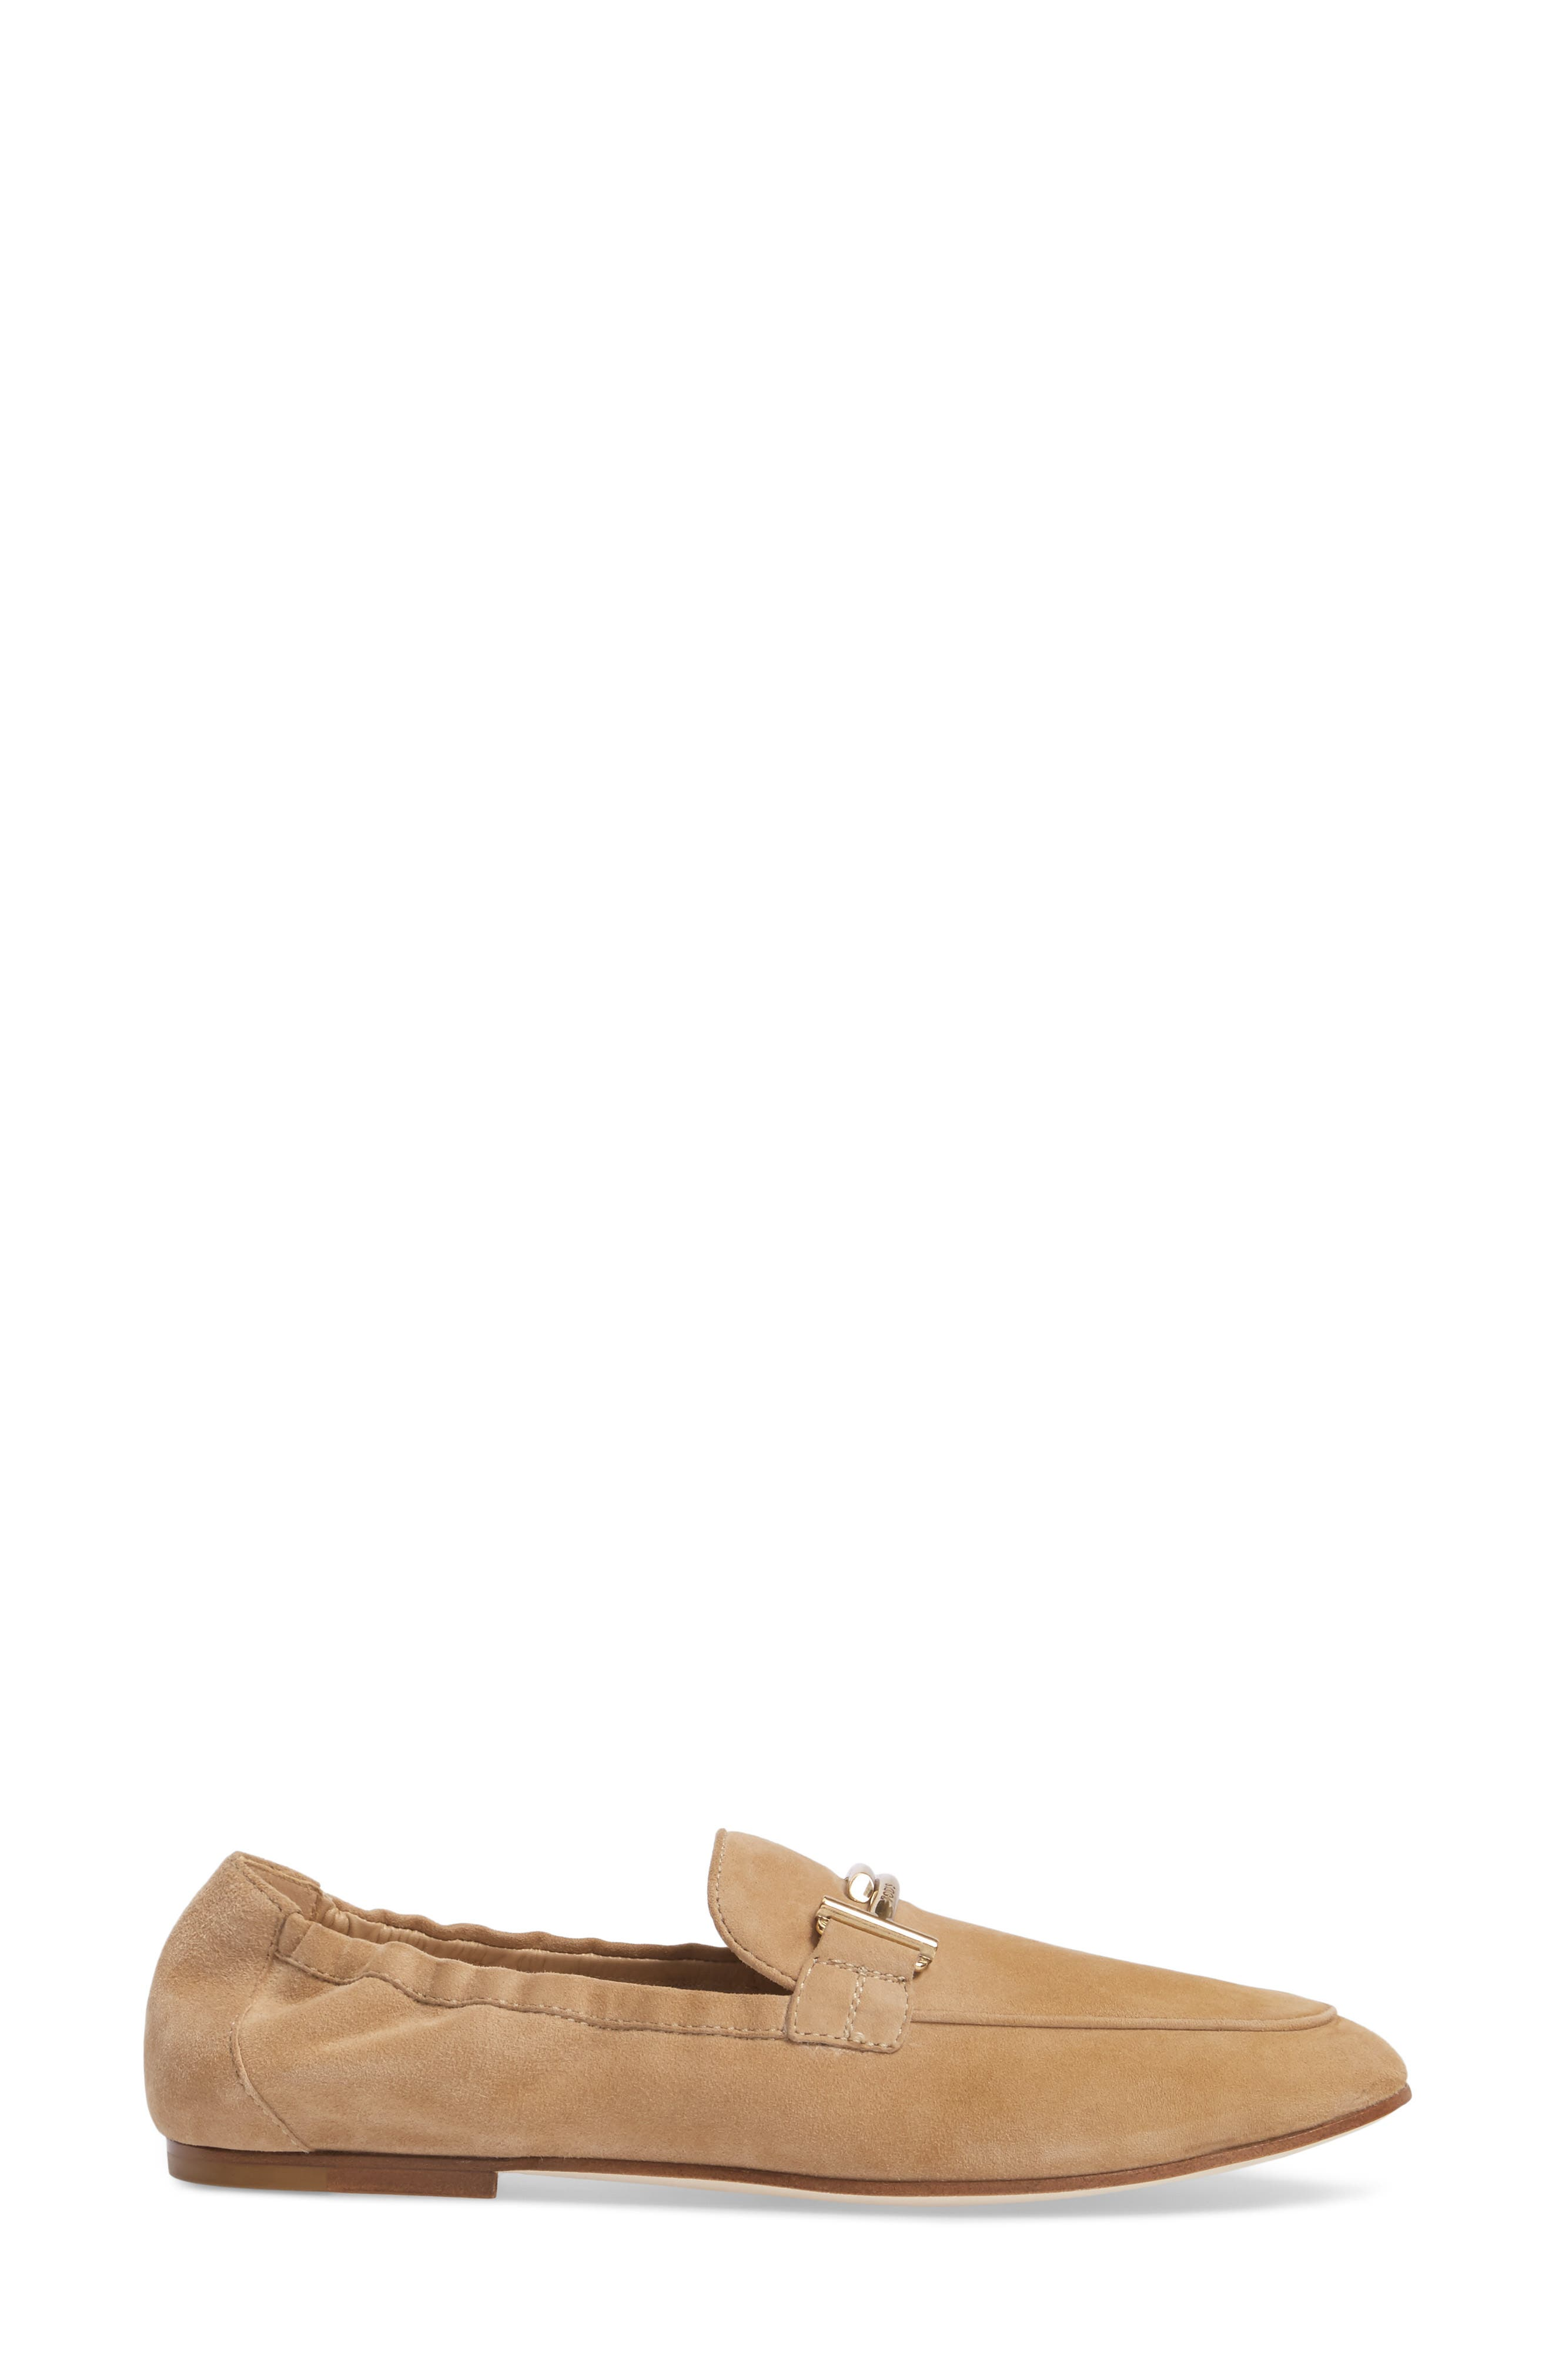 Double T Scrunch Loafer,                             Alternate thumbnail 3, color,                             Tan